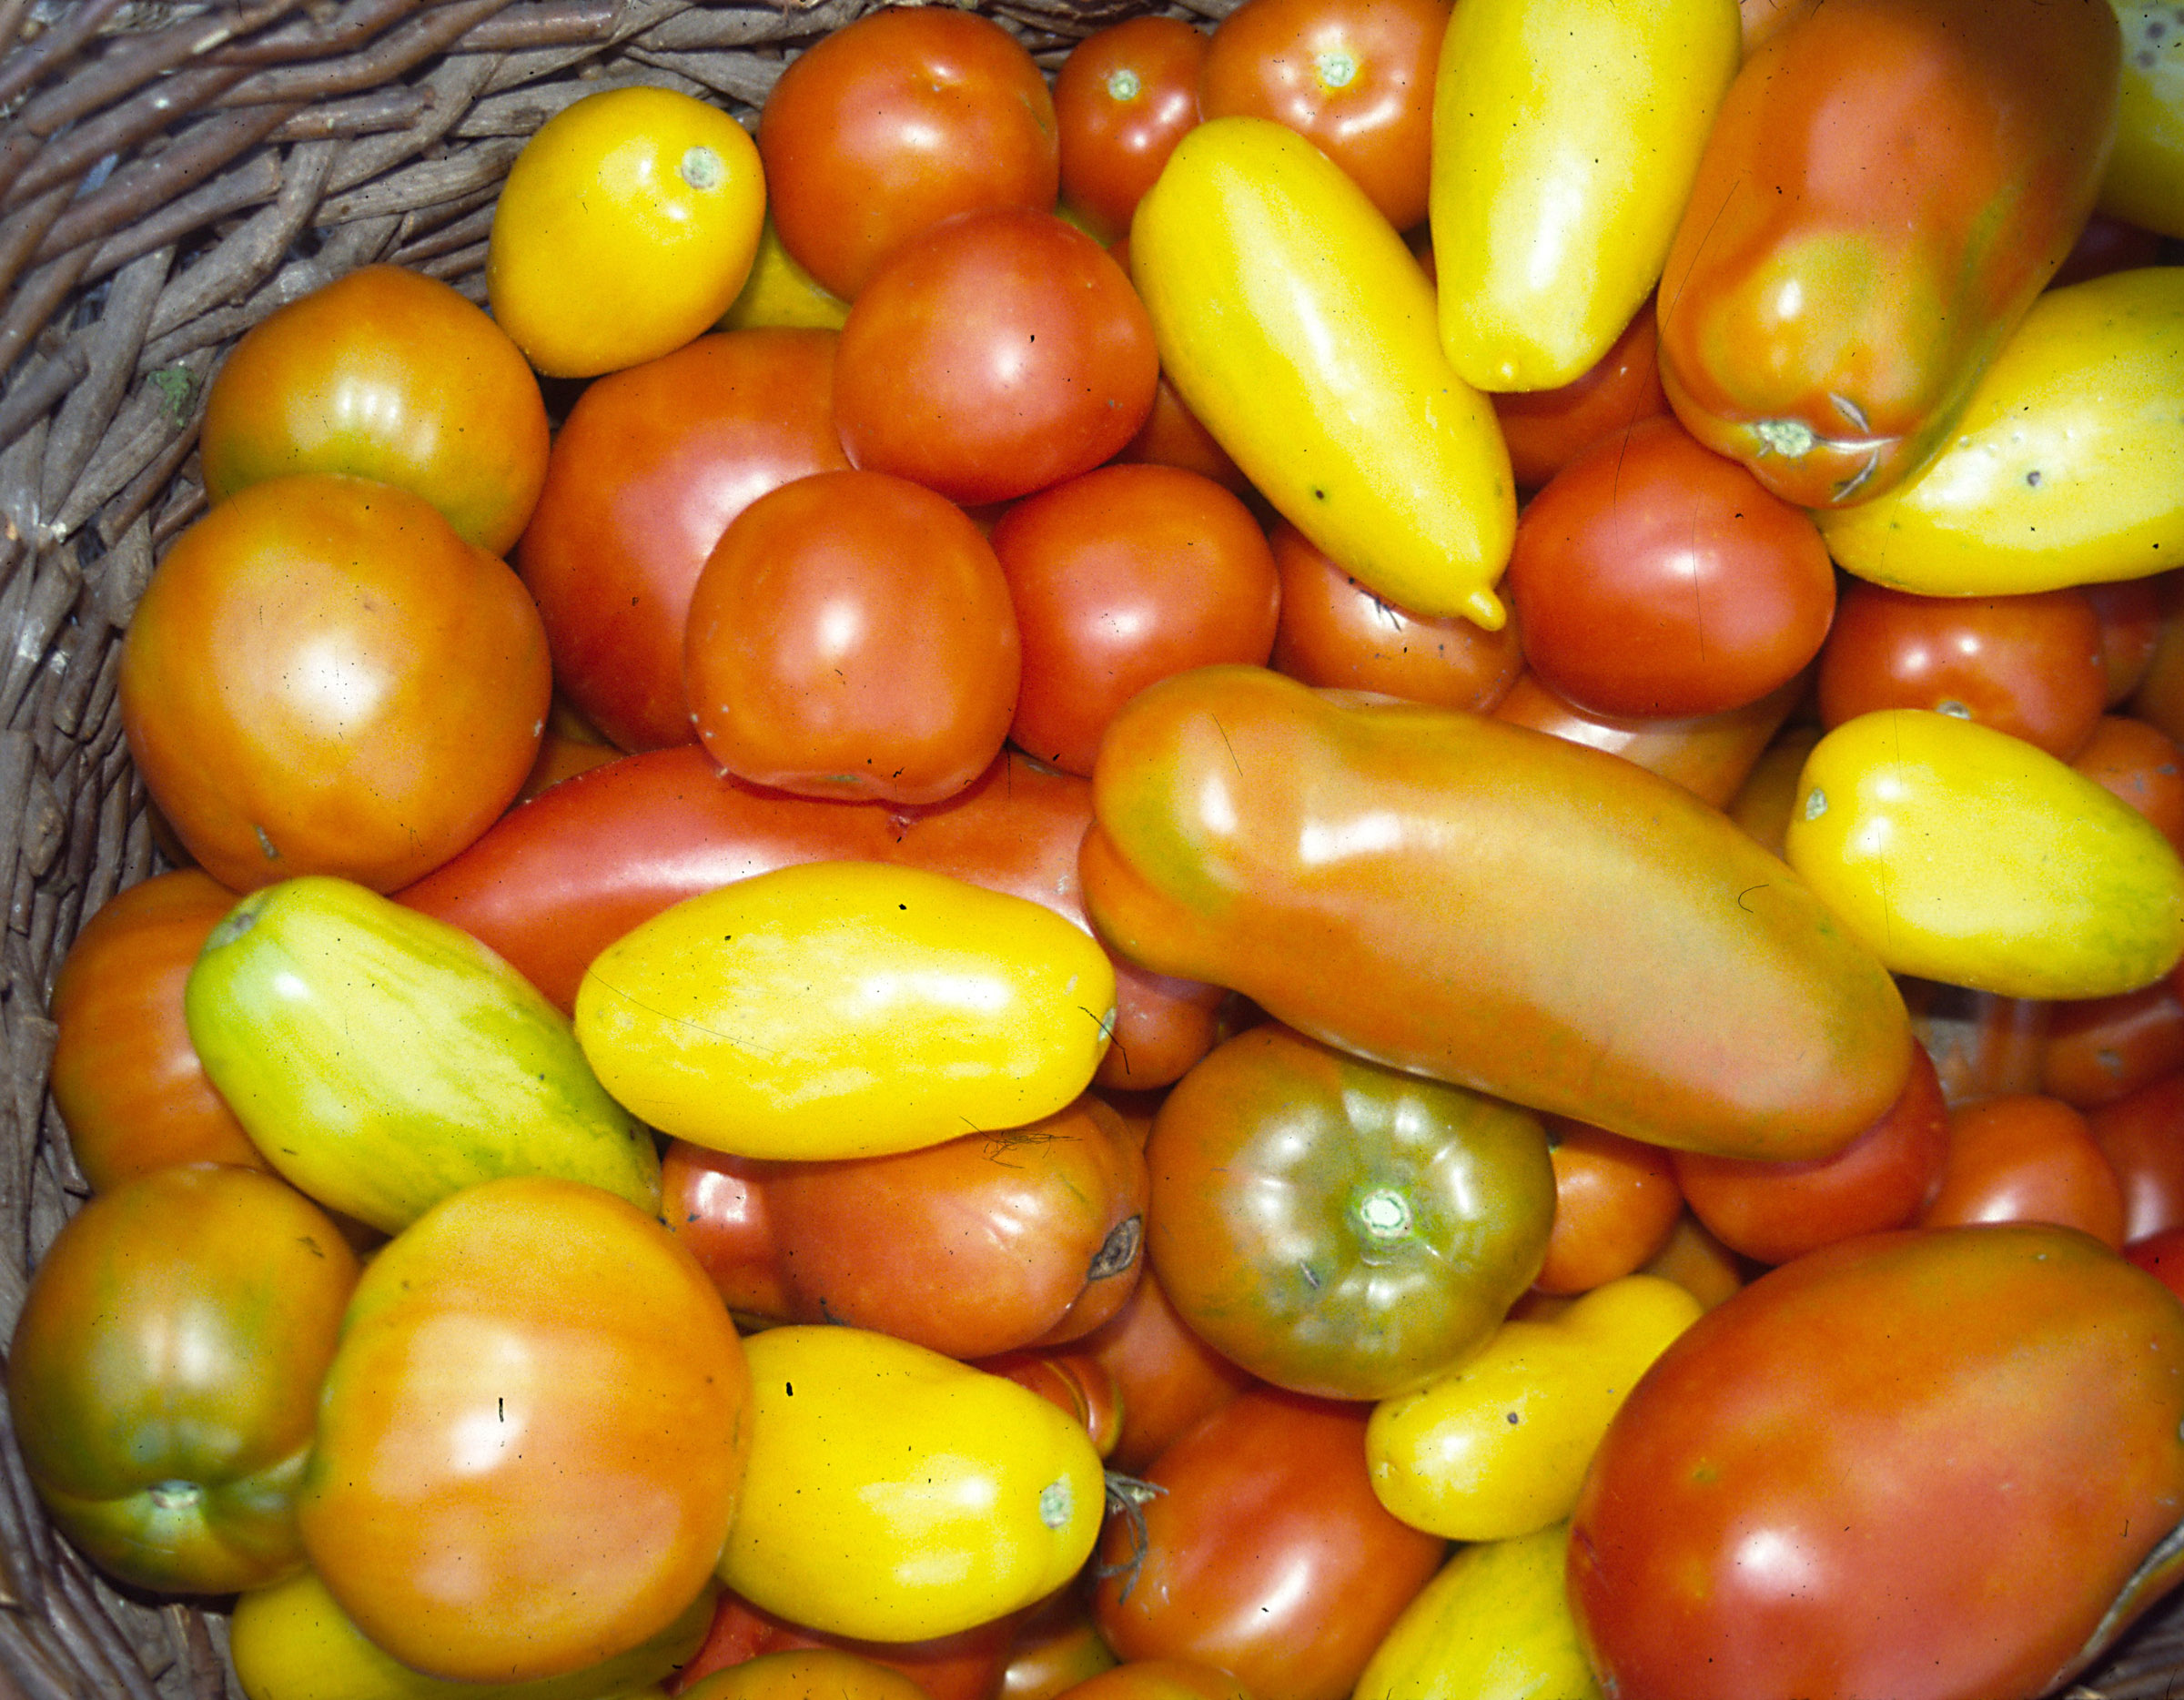 Heirloom tomatoes come in all shapes, sizes, colors, and flavors.